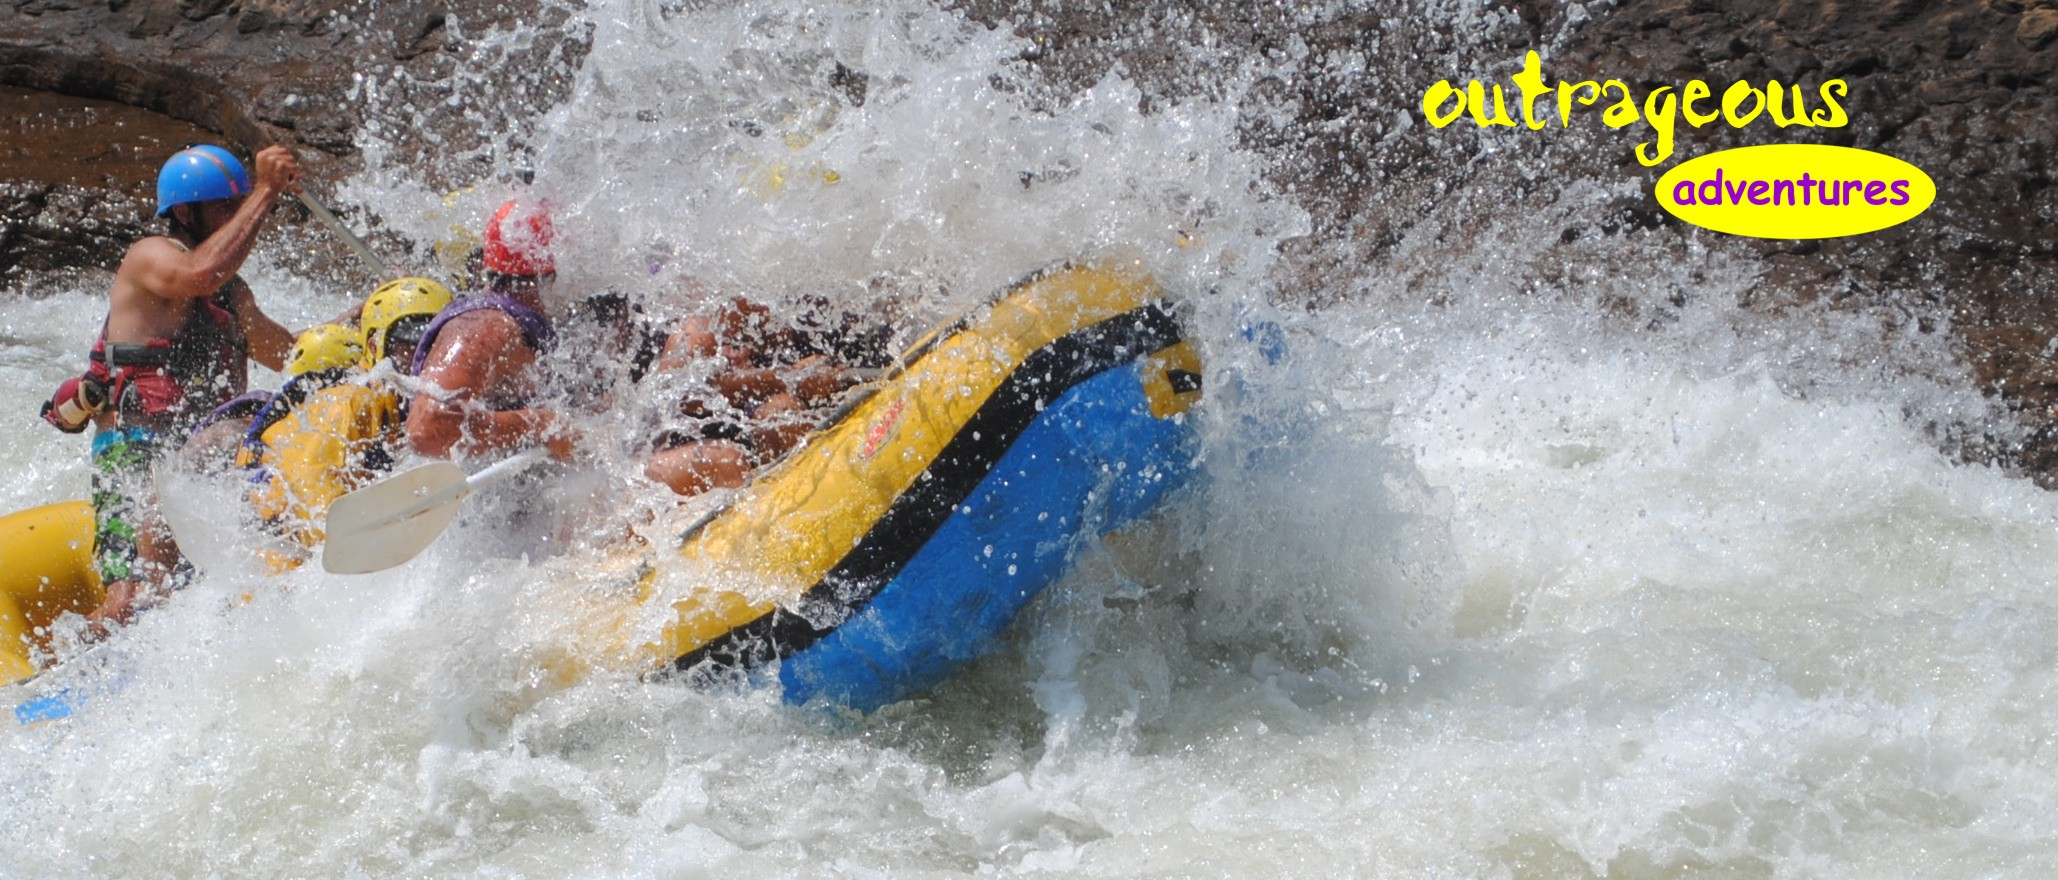 white water rafting action and adventure in South Africa.